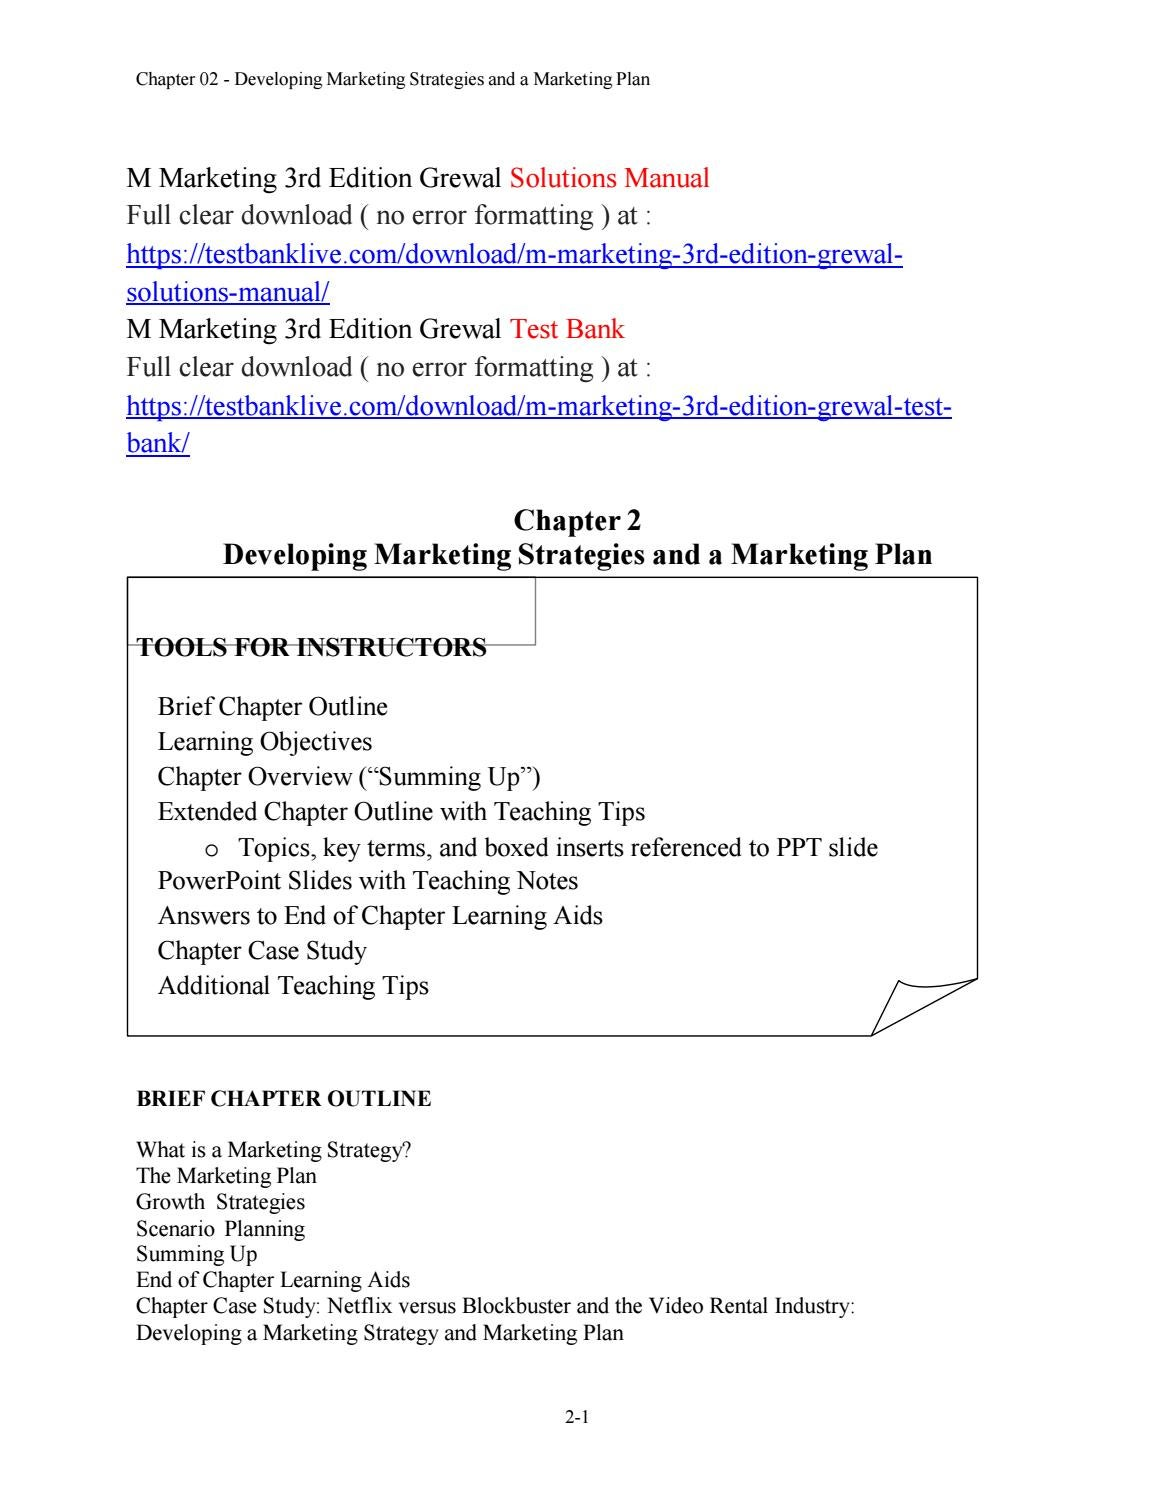 M marketing 3rd edition grewal solutions manual by bella6562 issuu fandeluxe Choice Image